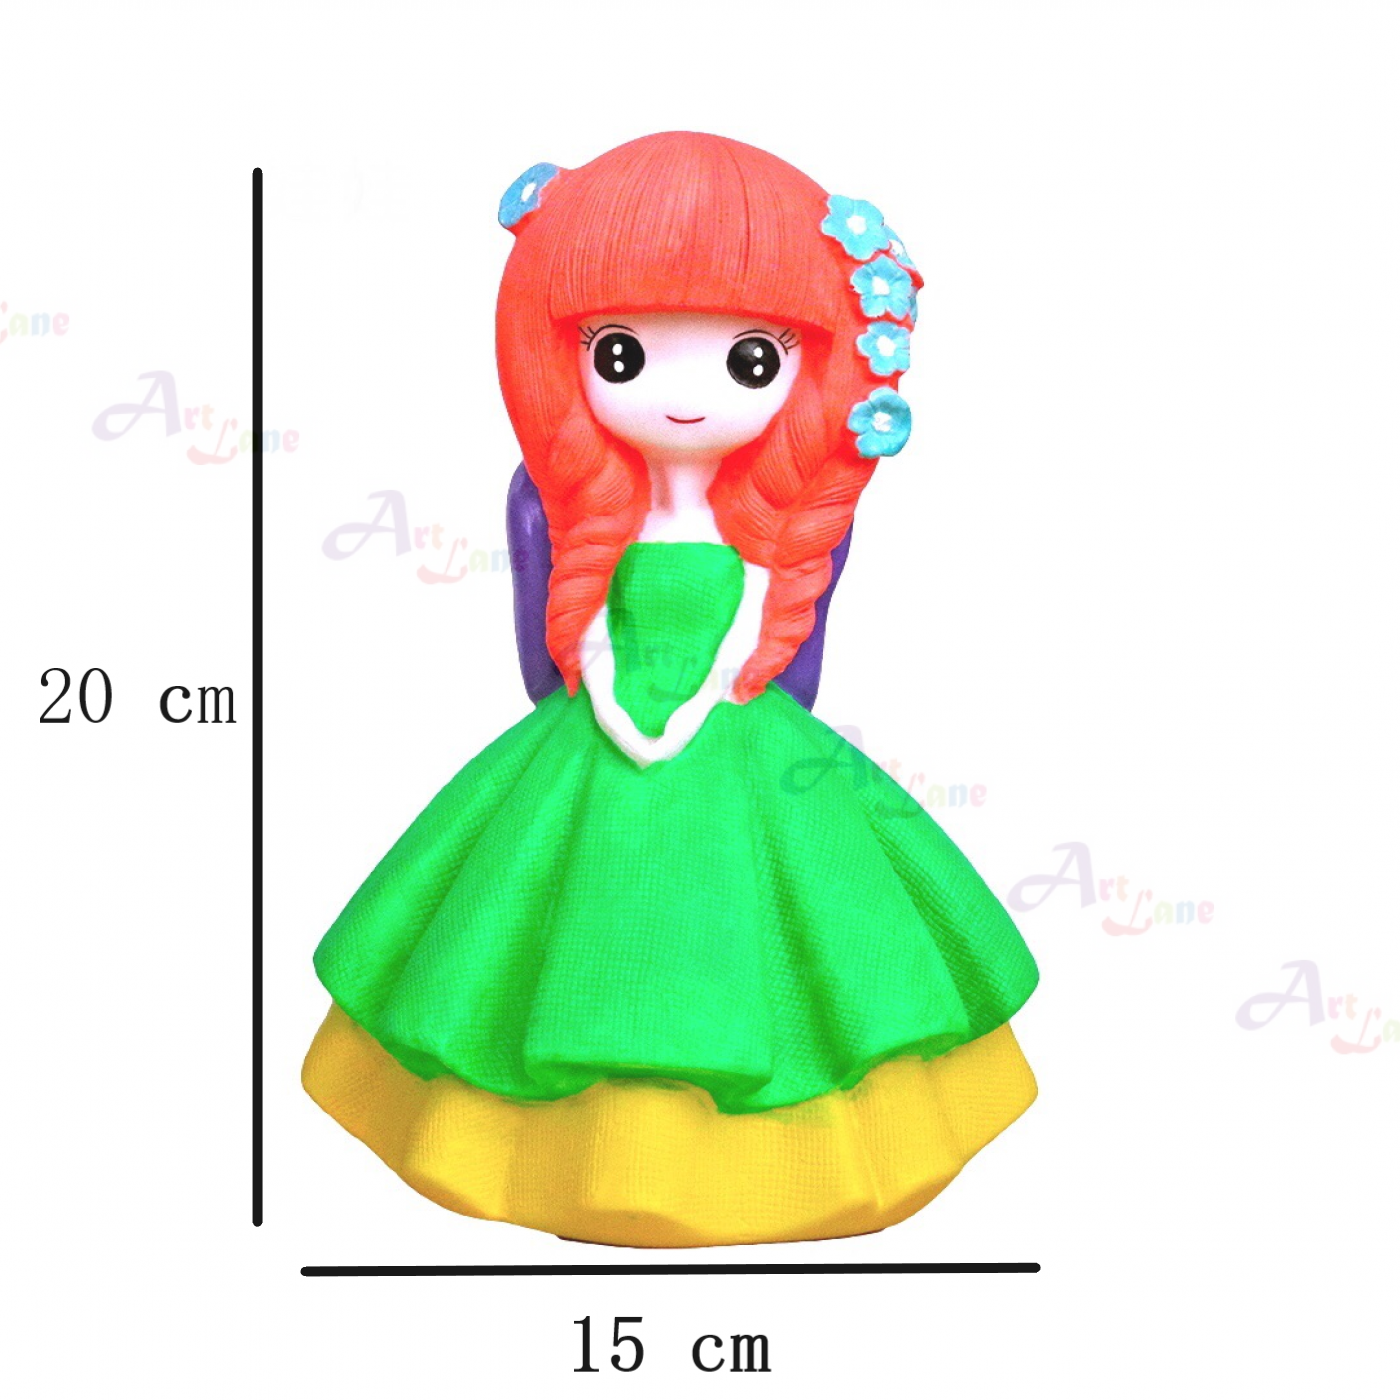 Coin Bank – green-doll with watermark